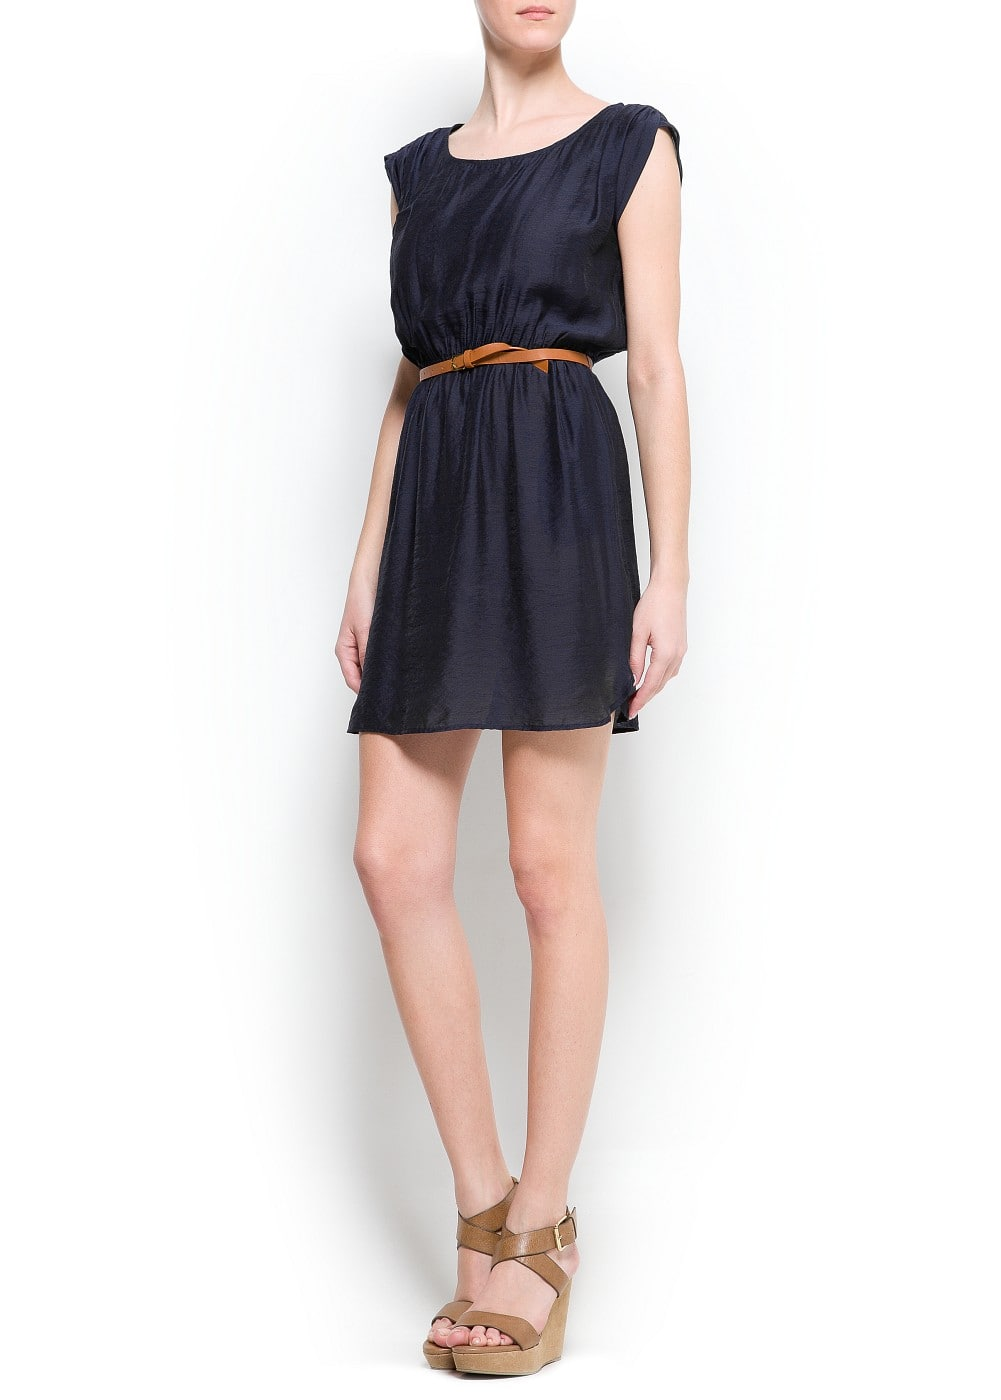 Pleated dress with belt